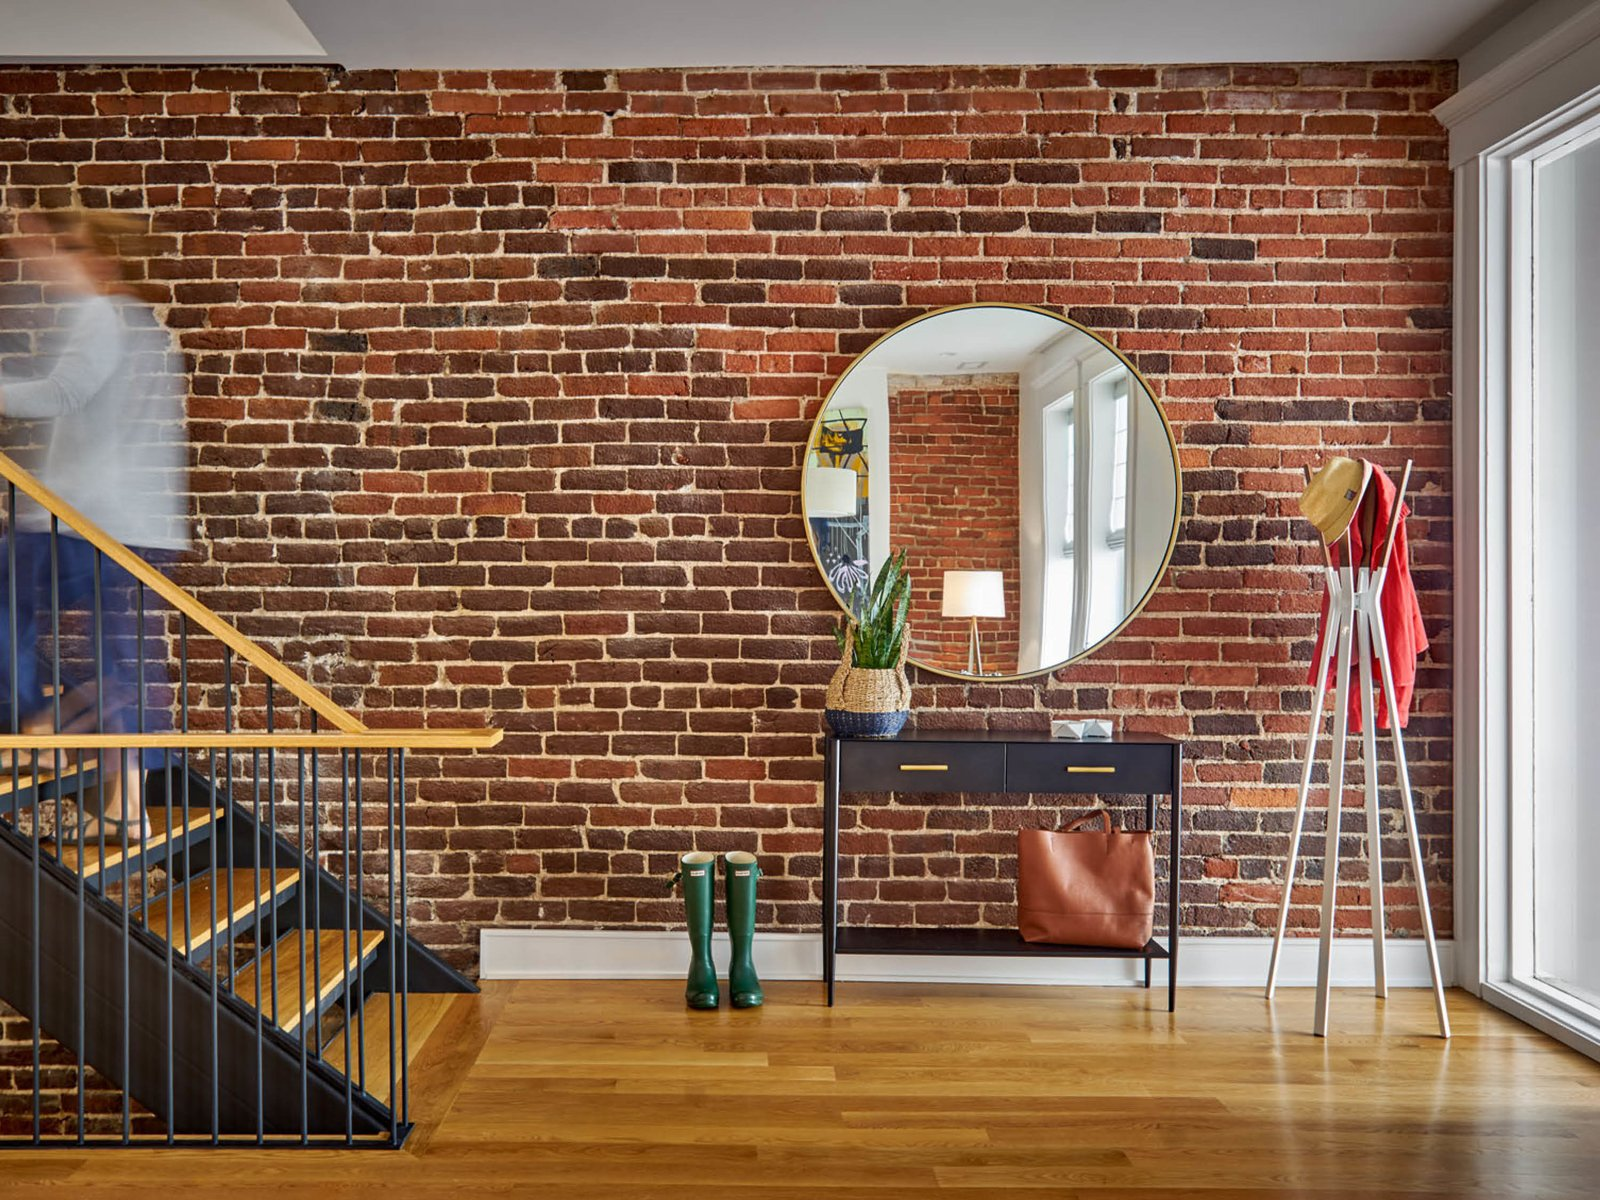 Staircase, Wood Tread, Metal Railing, and Wood Railing Entry  The Historic Ely Building